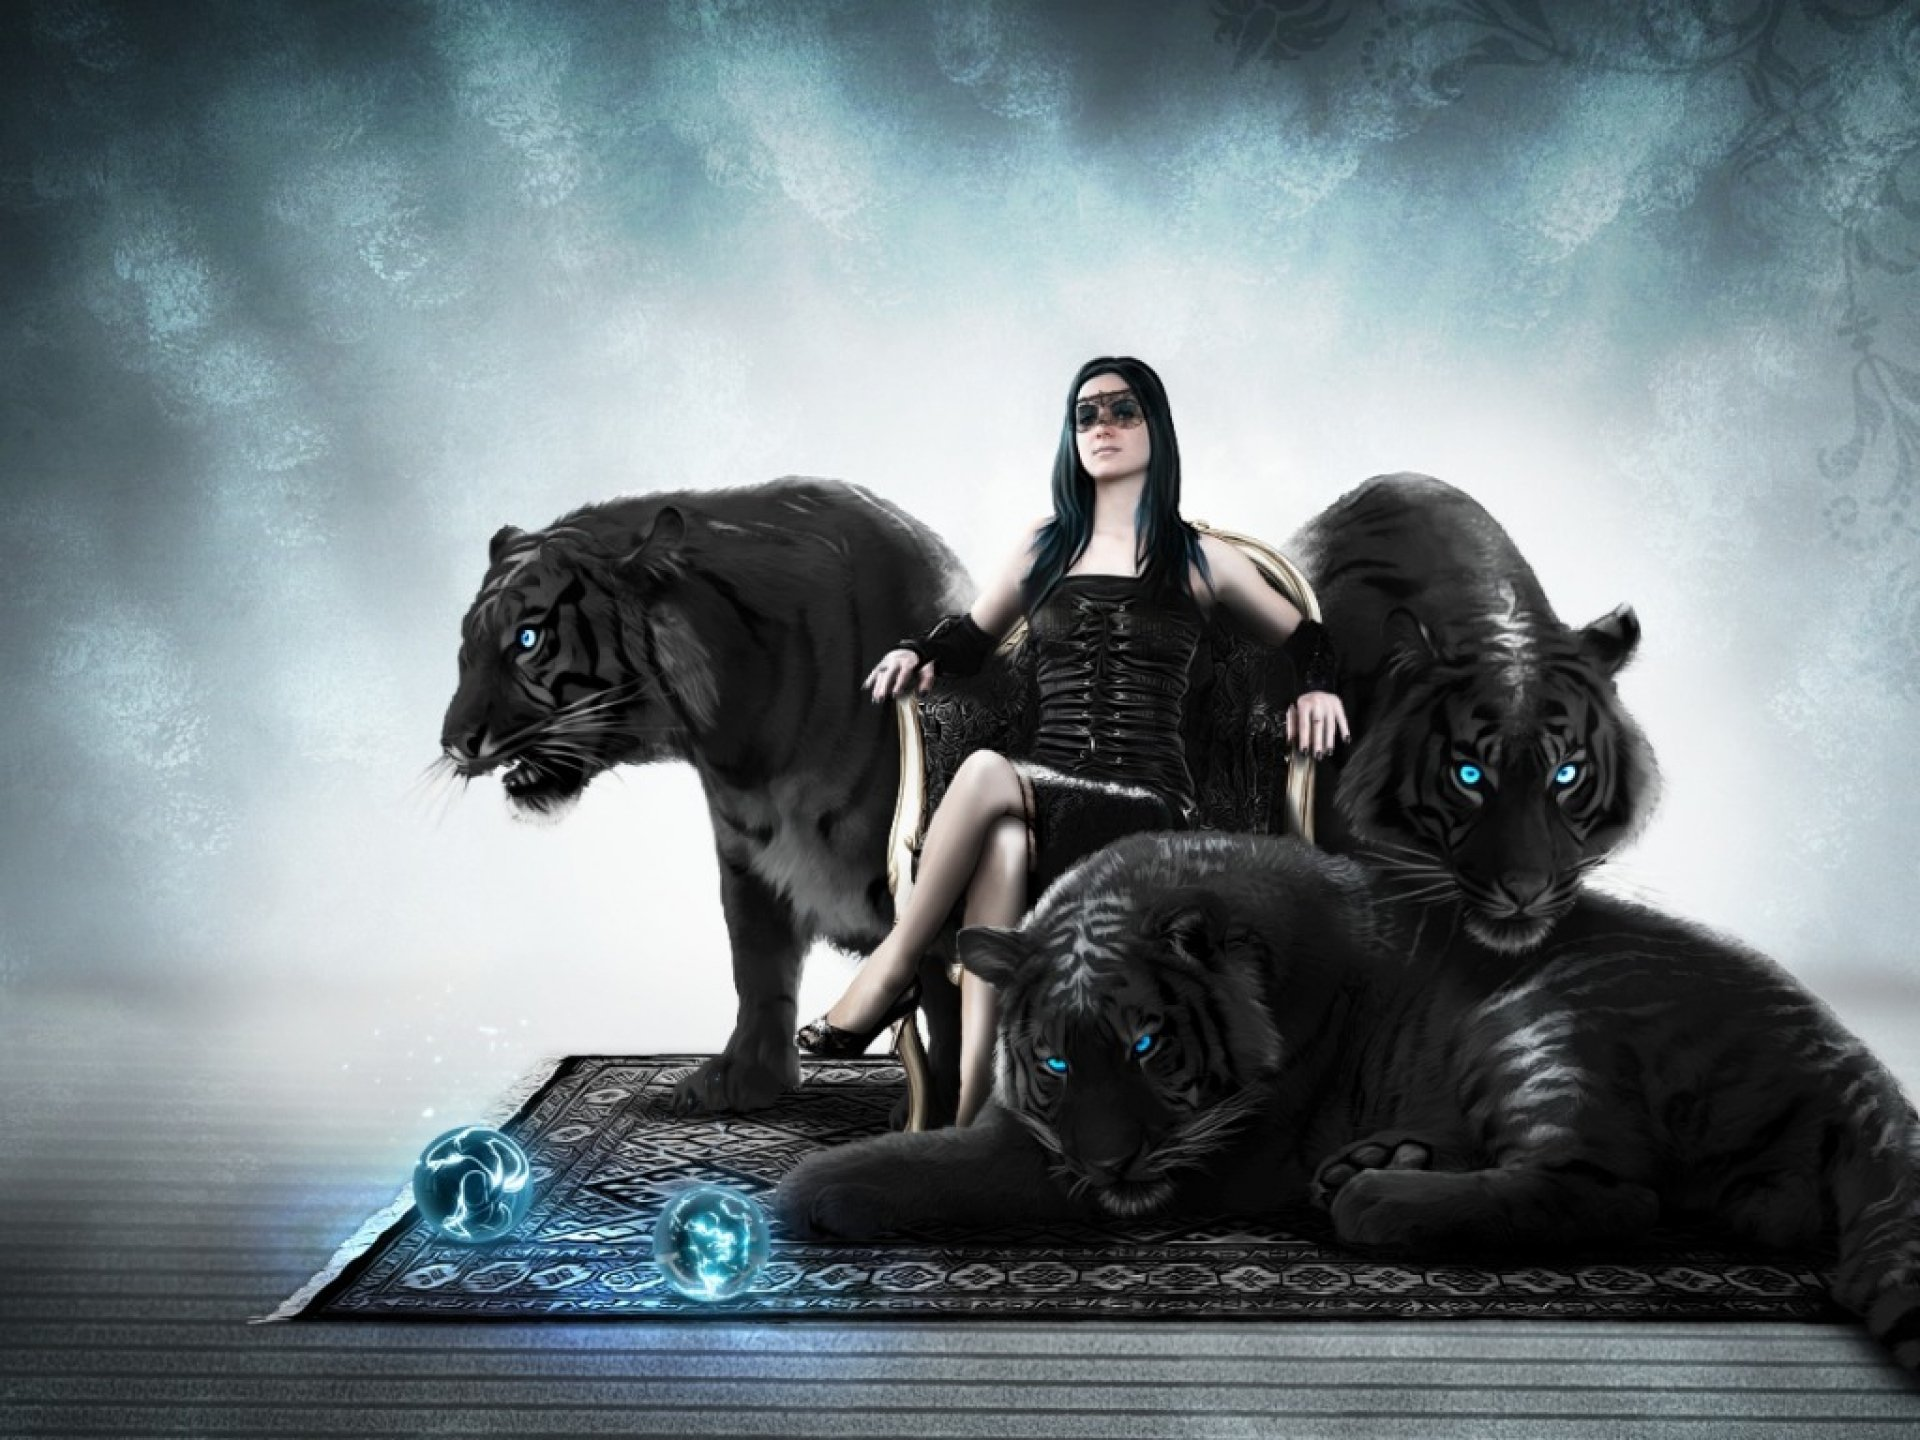 Black Tiger Hd Wallpaper Background Image 1920x1440 Id 587448 Wallpaper Abyss